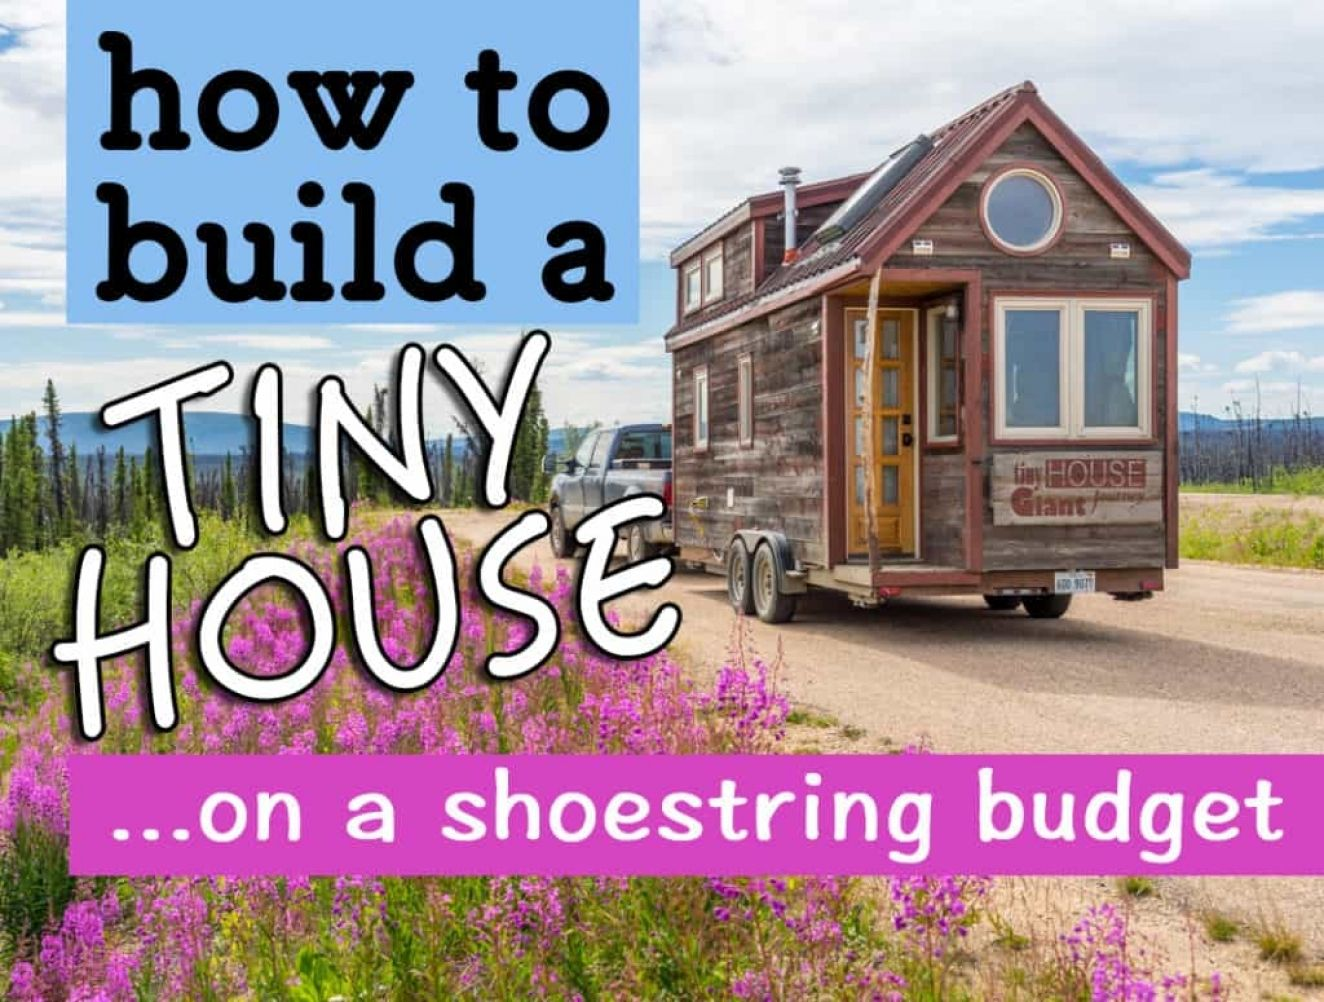 house cheapest way to build